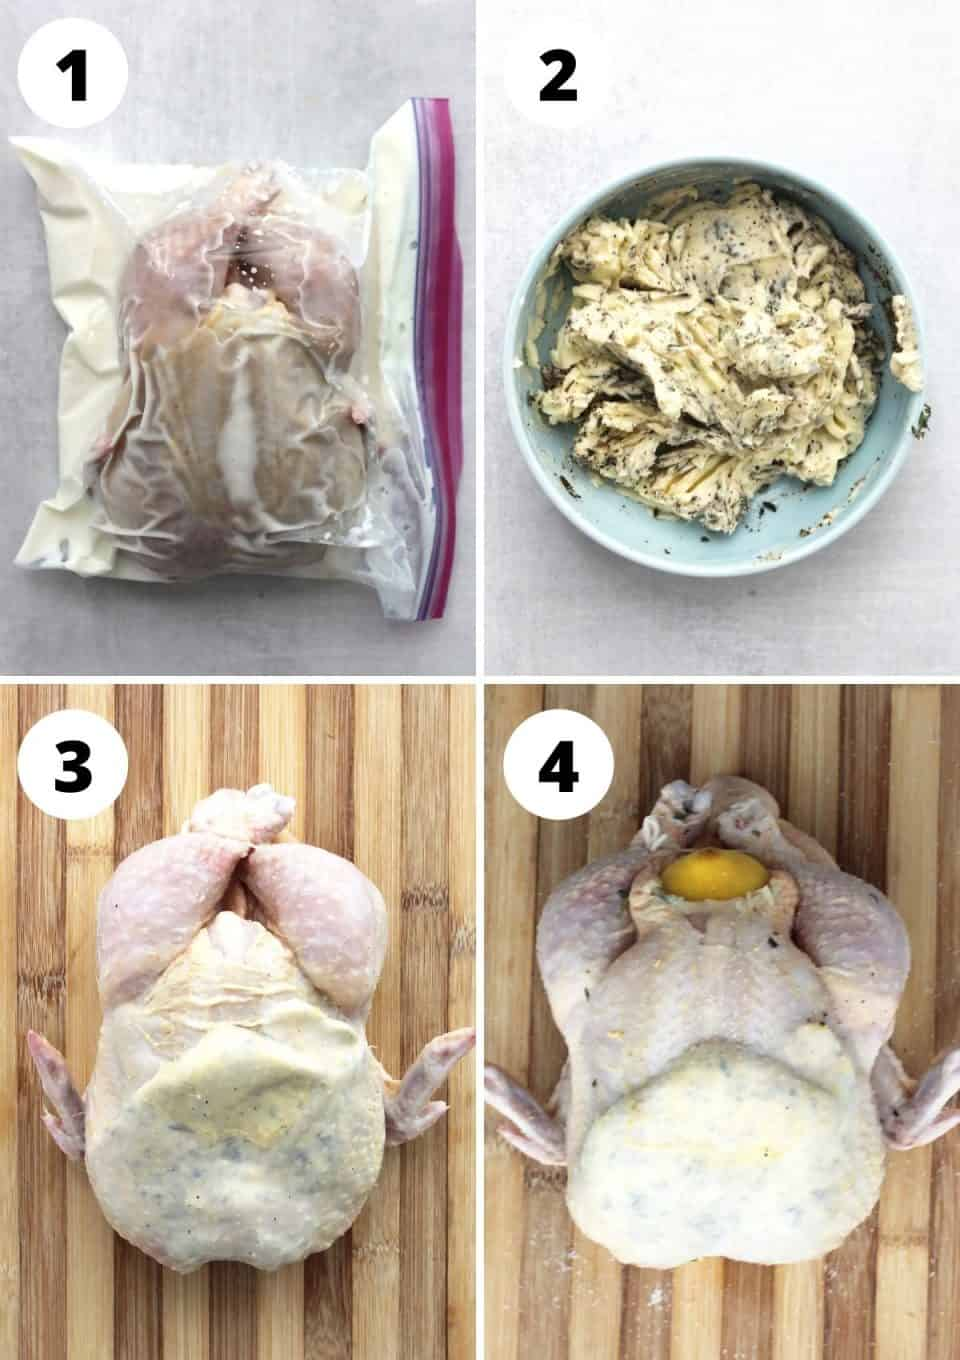 Four step by step photos to show how to marinate and prep the chicken before roasting it.